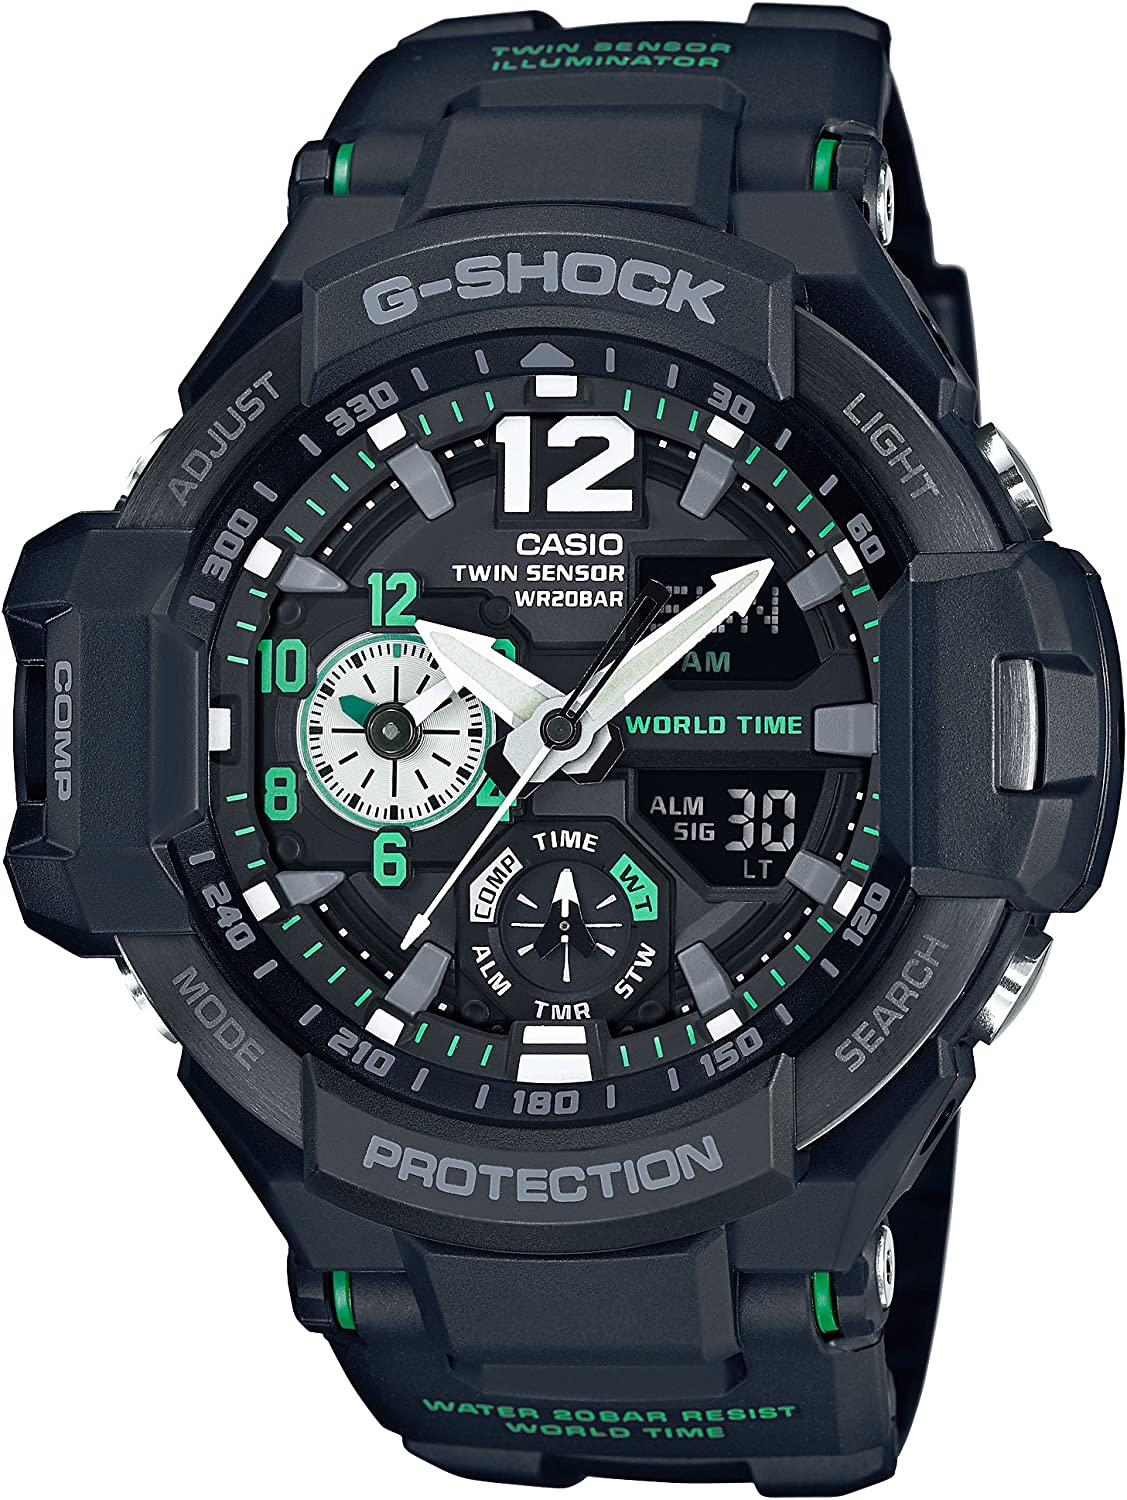 Casio G-Shock Sky Cockpit Ga-1100-1a3jf Pre-Order Japanese Model